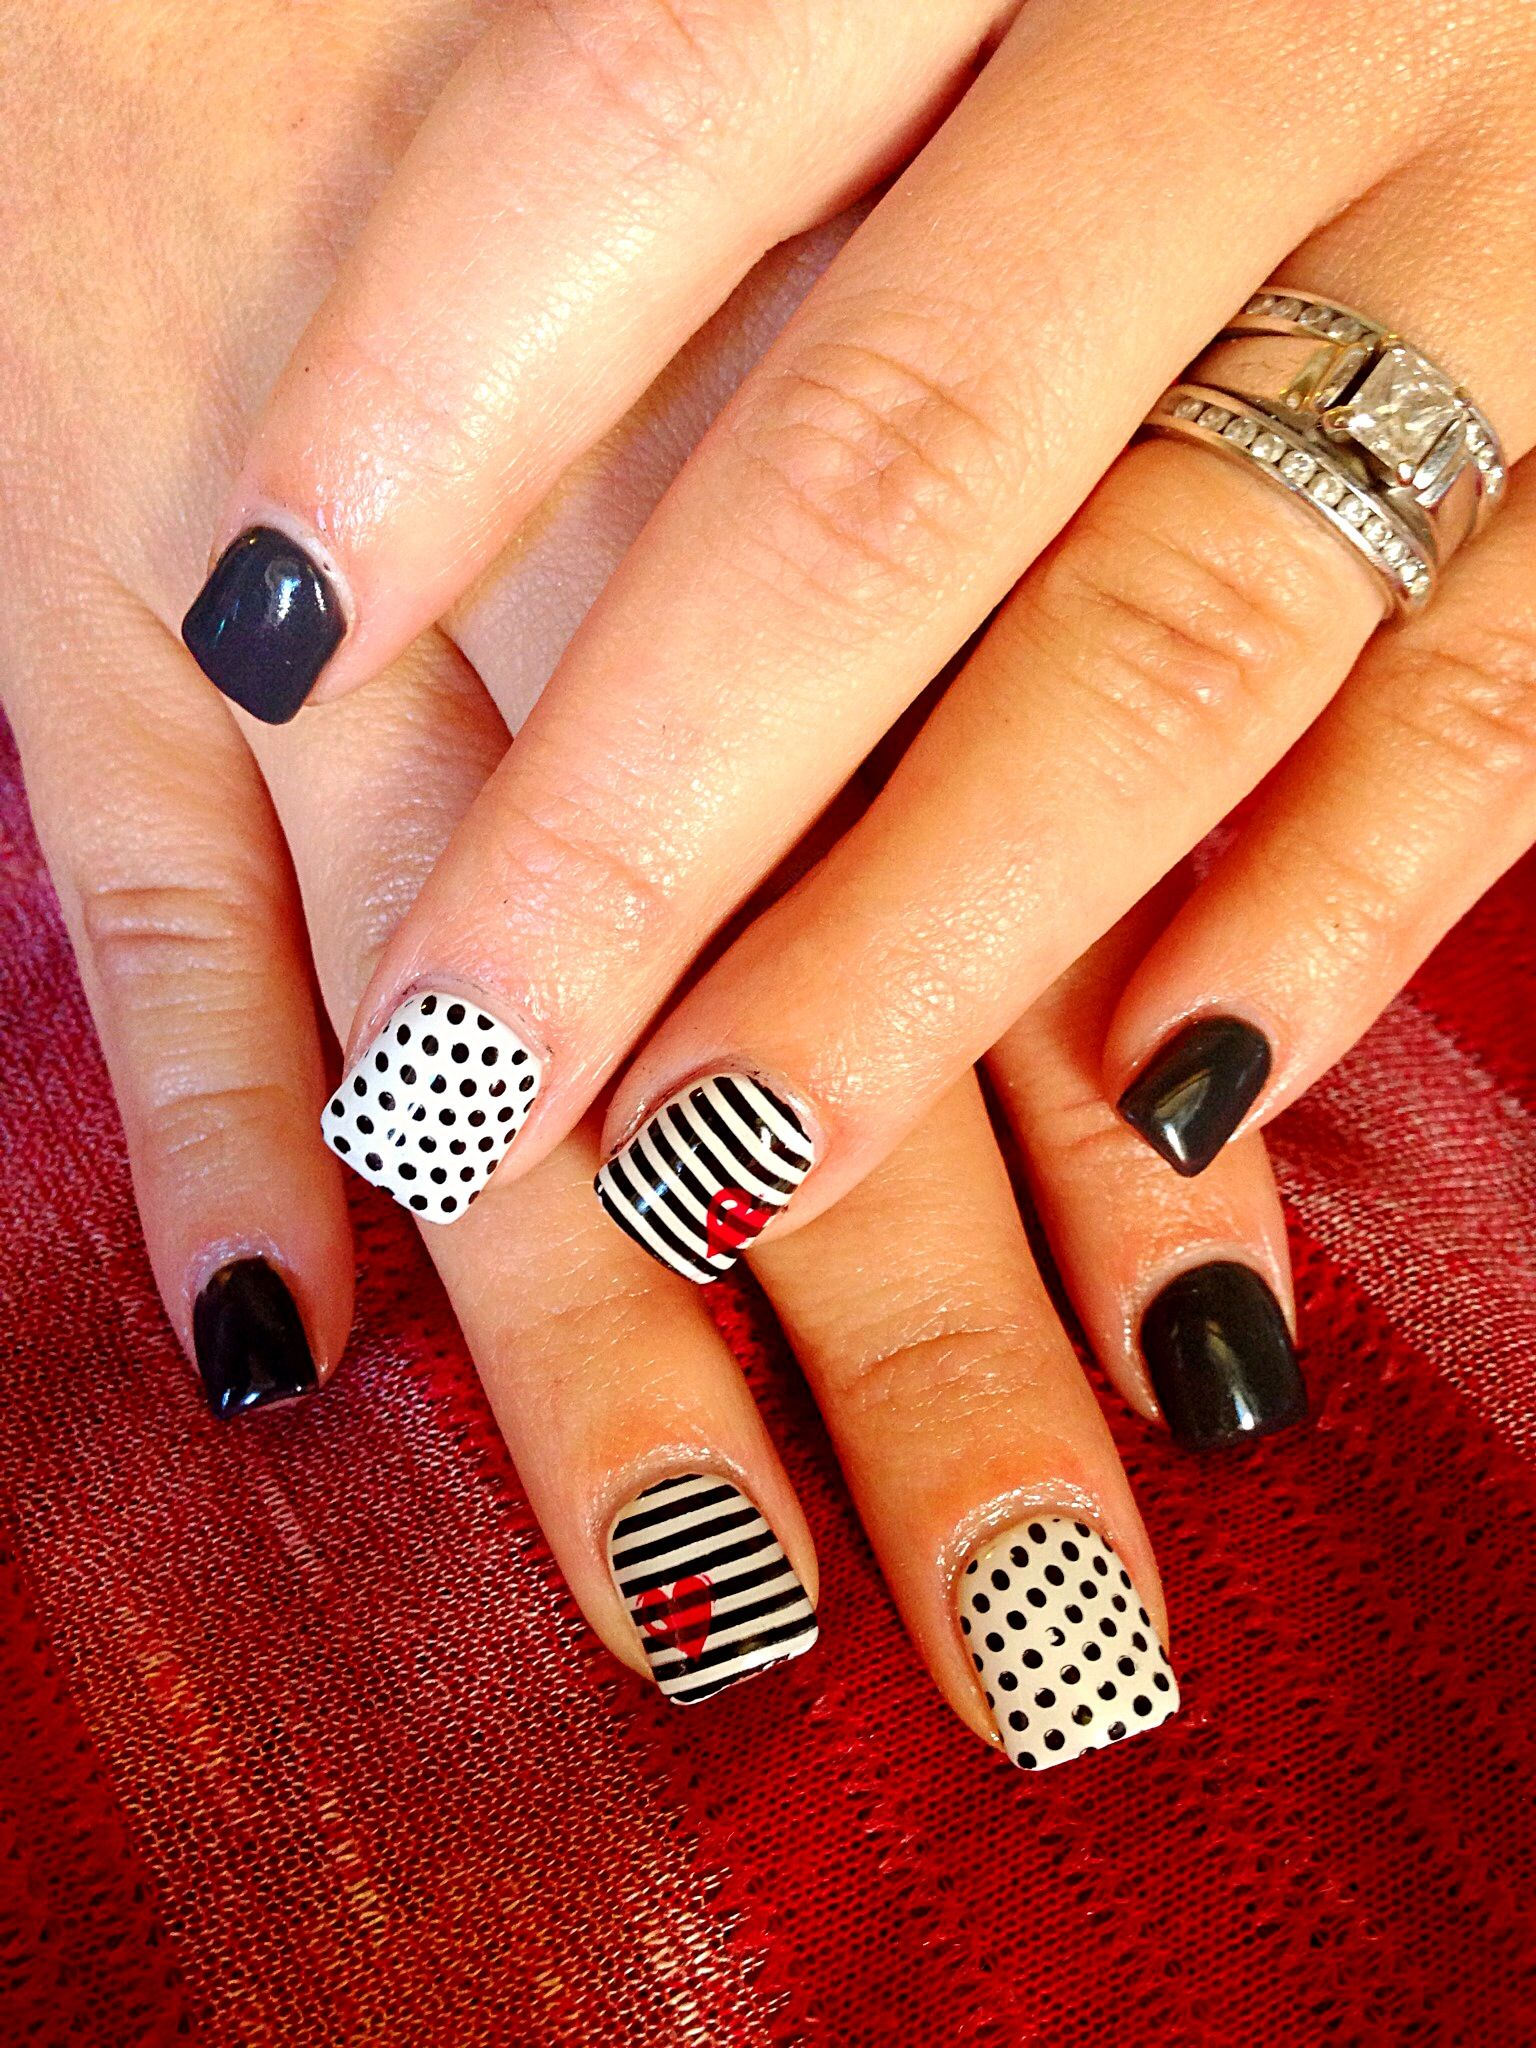 Polka Dots And Striped Nail Arti Could Do This Bucs Style